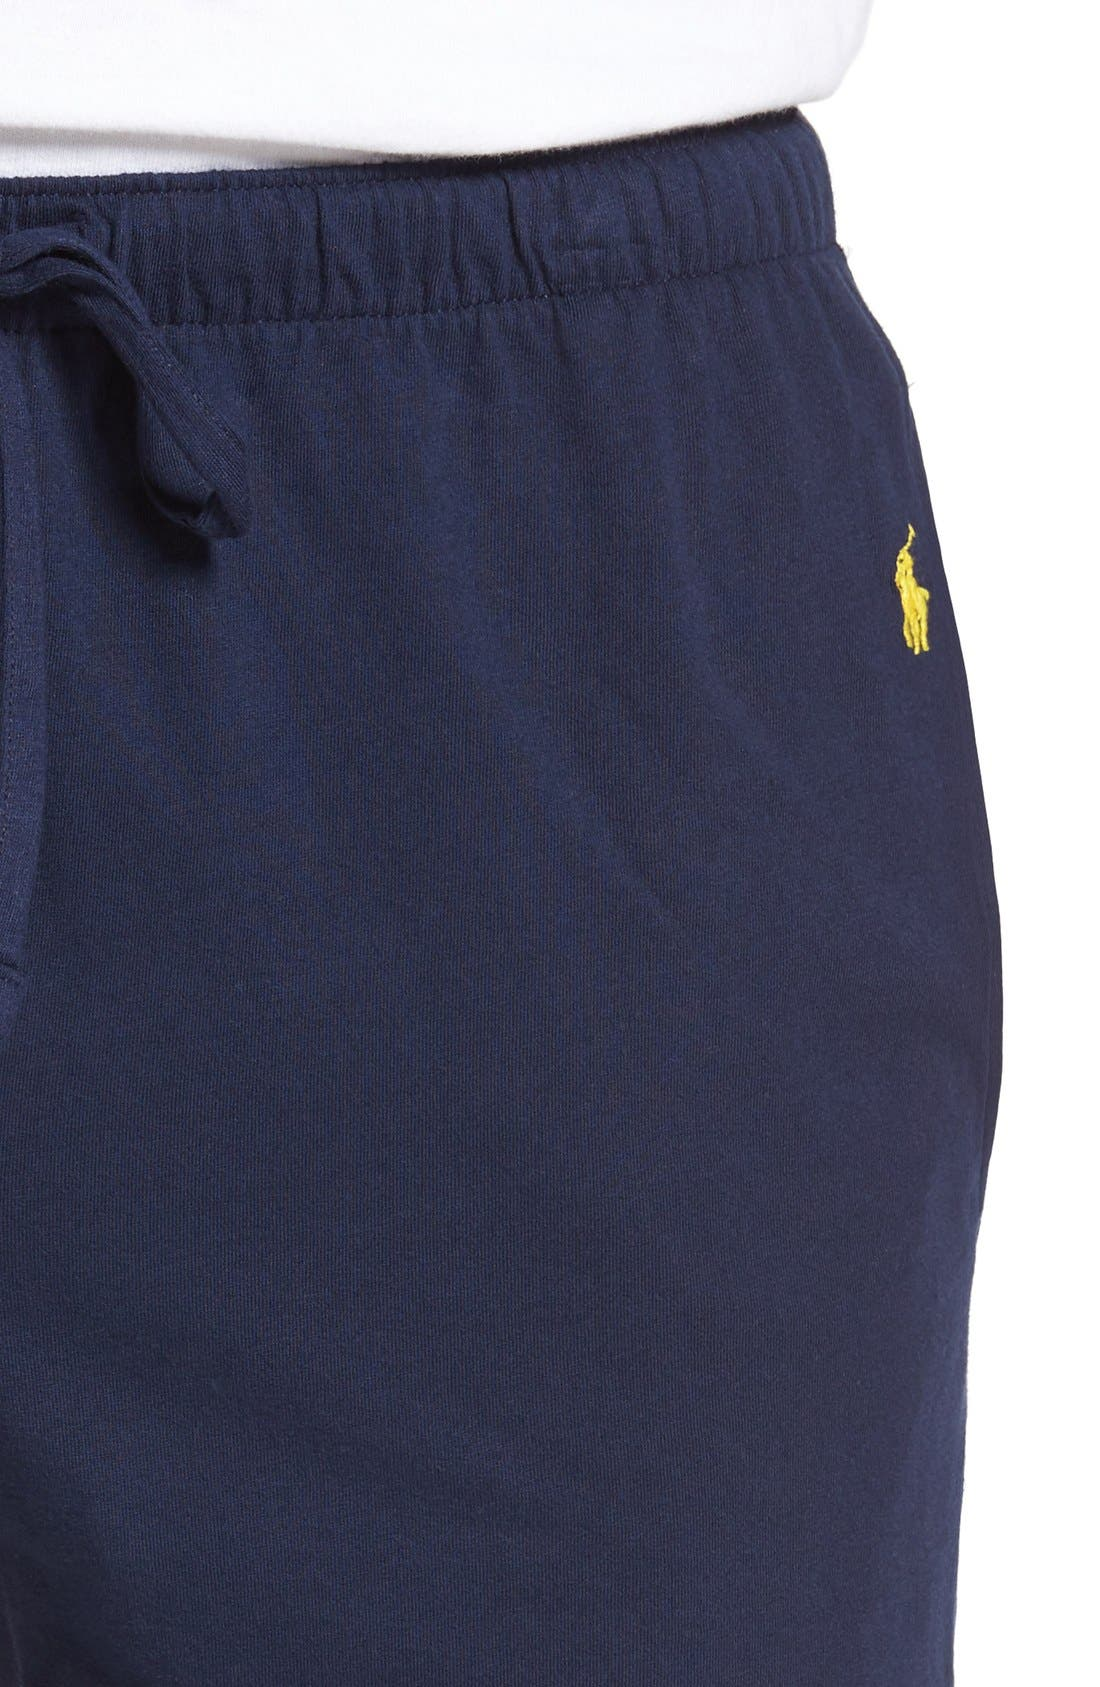 Alternate Image 4  - Polo Ralph Lauren Relaxed Fit Jogger Pants